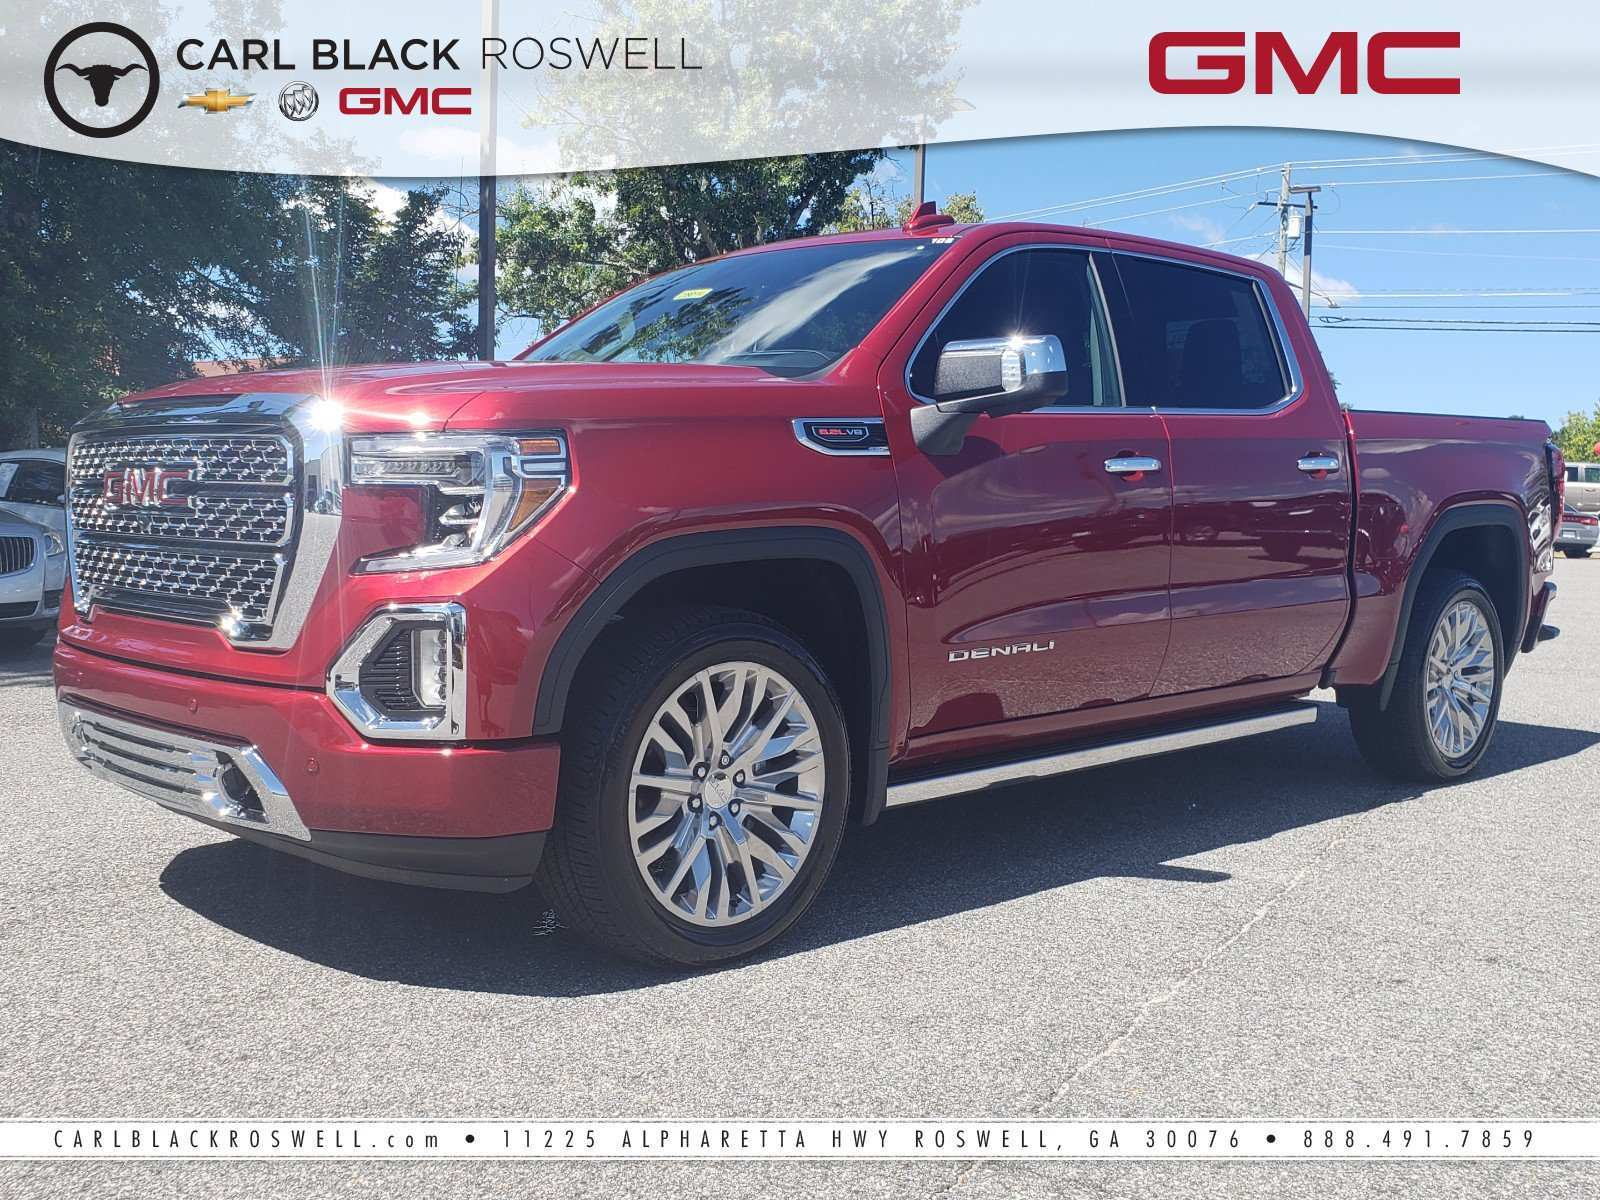 59 The Best 2019 Gmc Sierra Denali 1500 Hd Review And Release Date